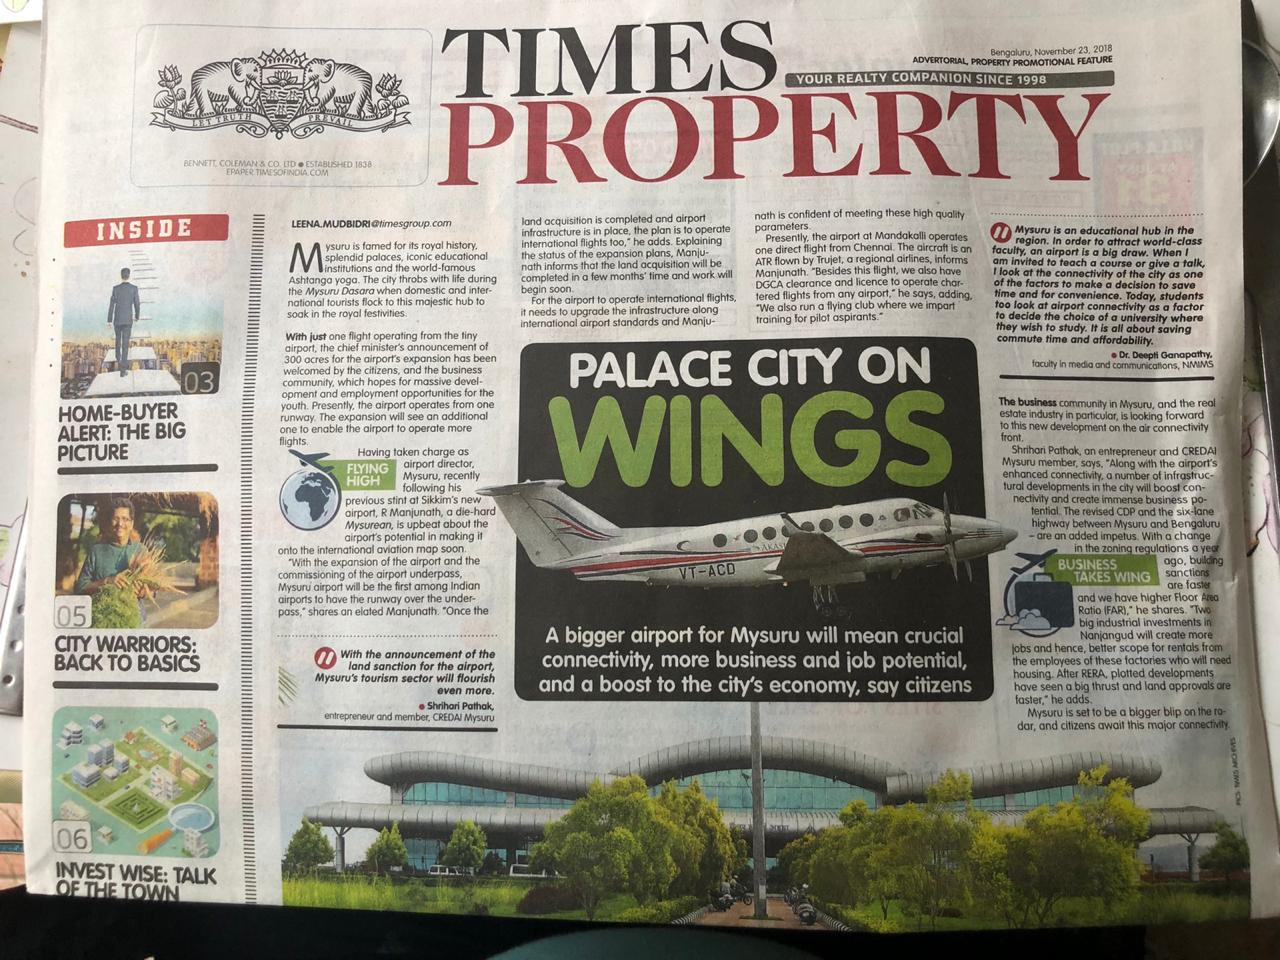 Palace City on Wings